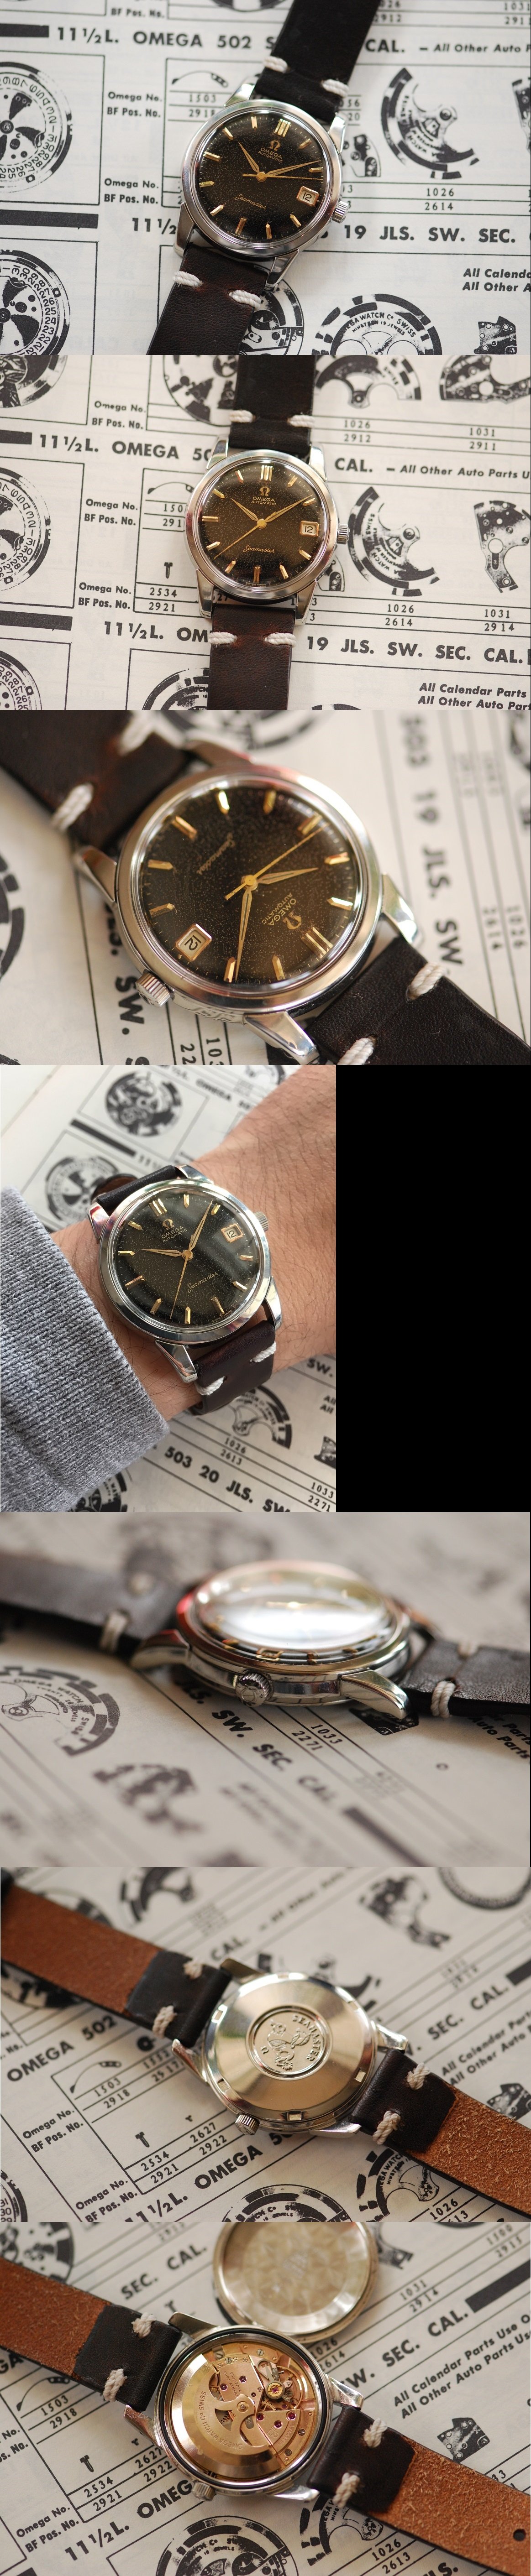 1963 Omega Seamaster Automatic Vintage Gent's Watch